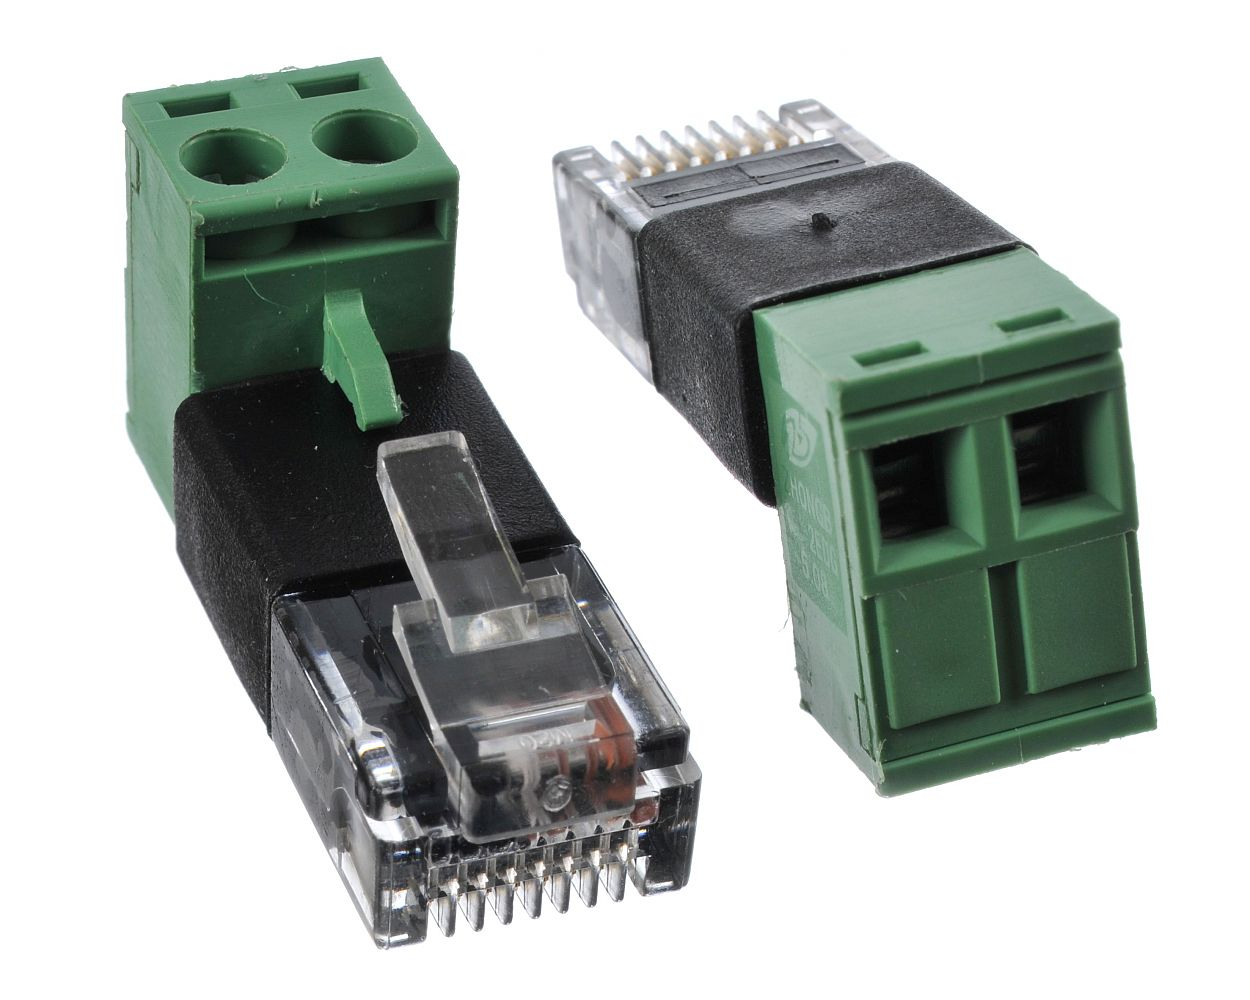 Rj45 Modular Plug To Screw Terminal Poe Extraction Adapter Wiring A French 3 Pin Wire For Voltage